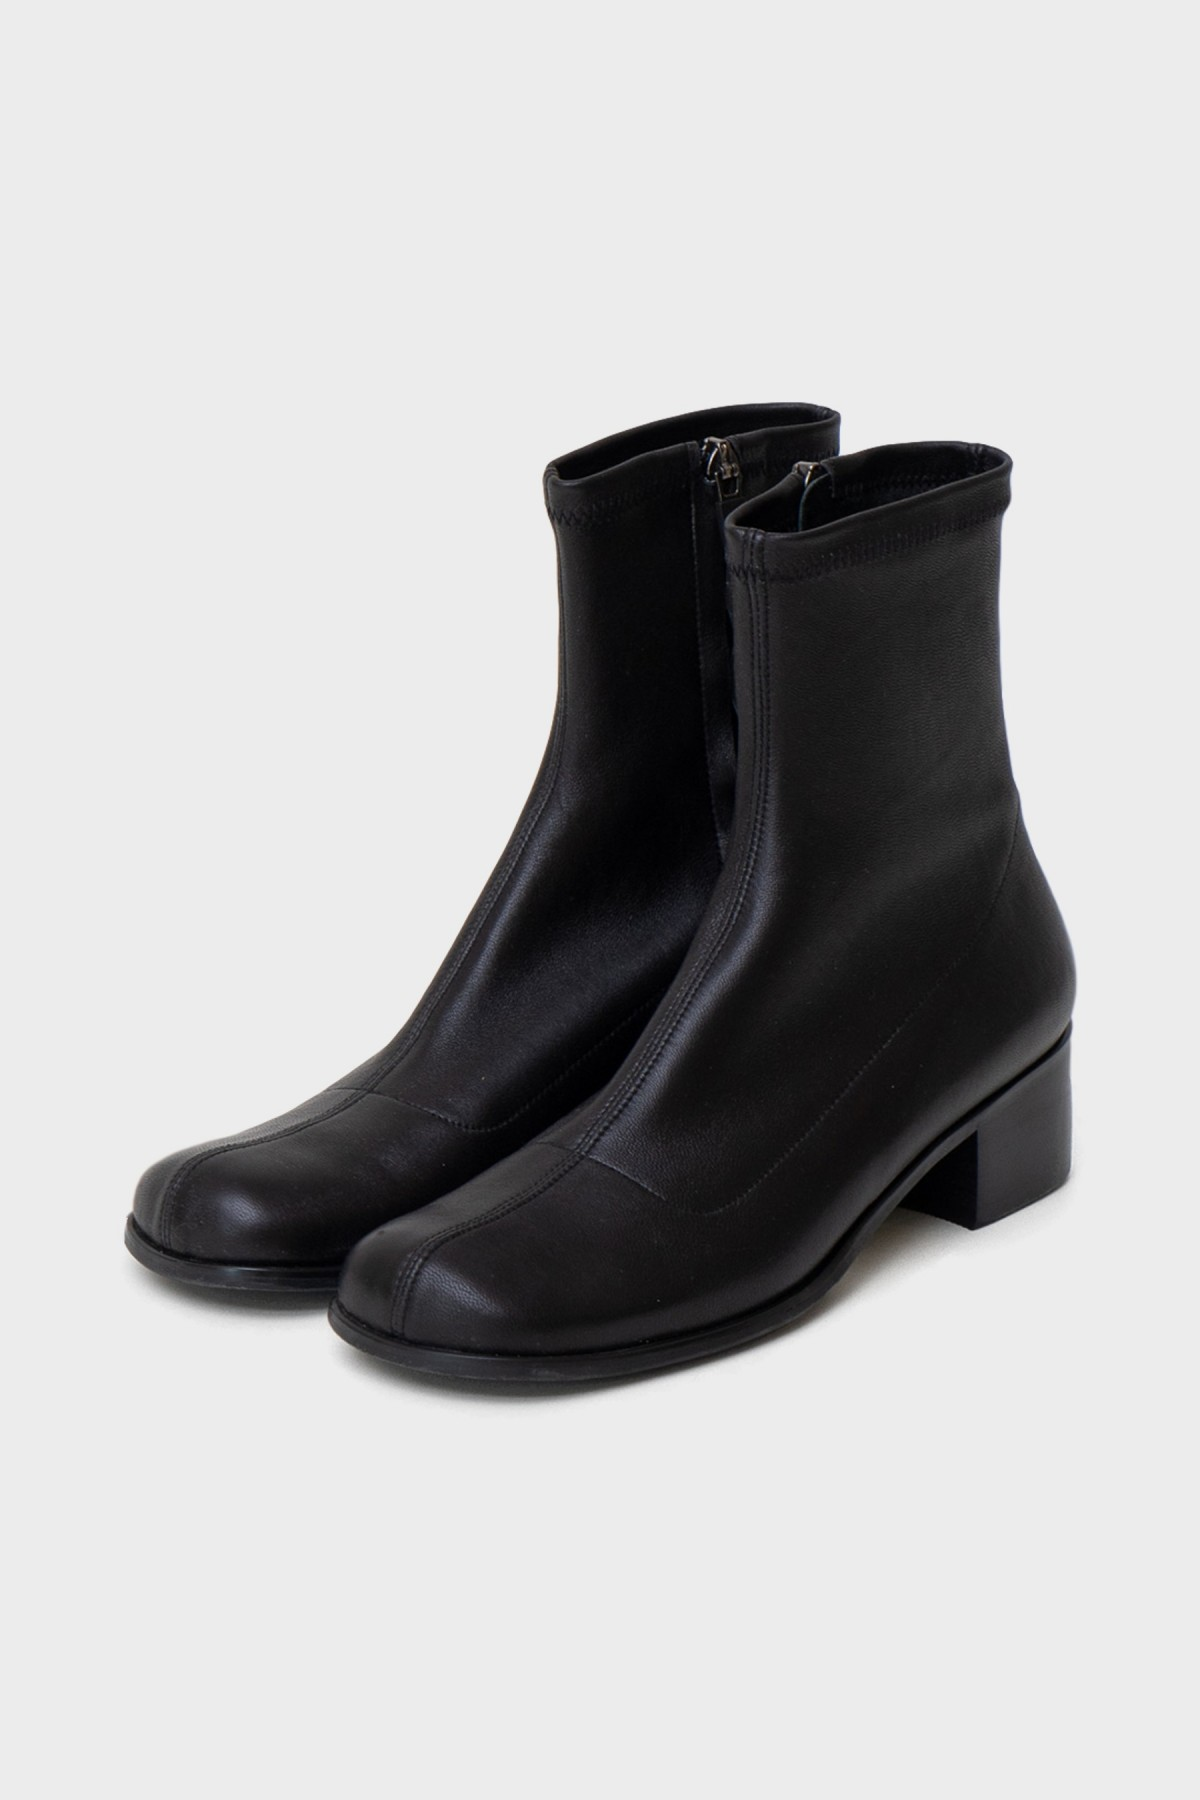 Amomento Slim Boots in Black